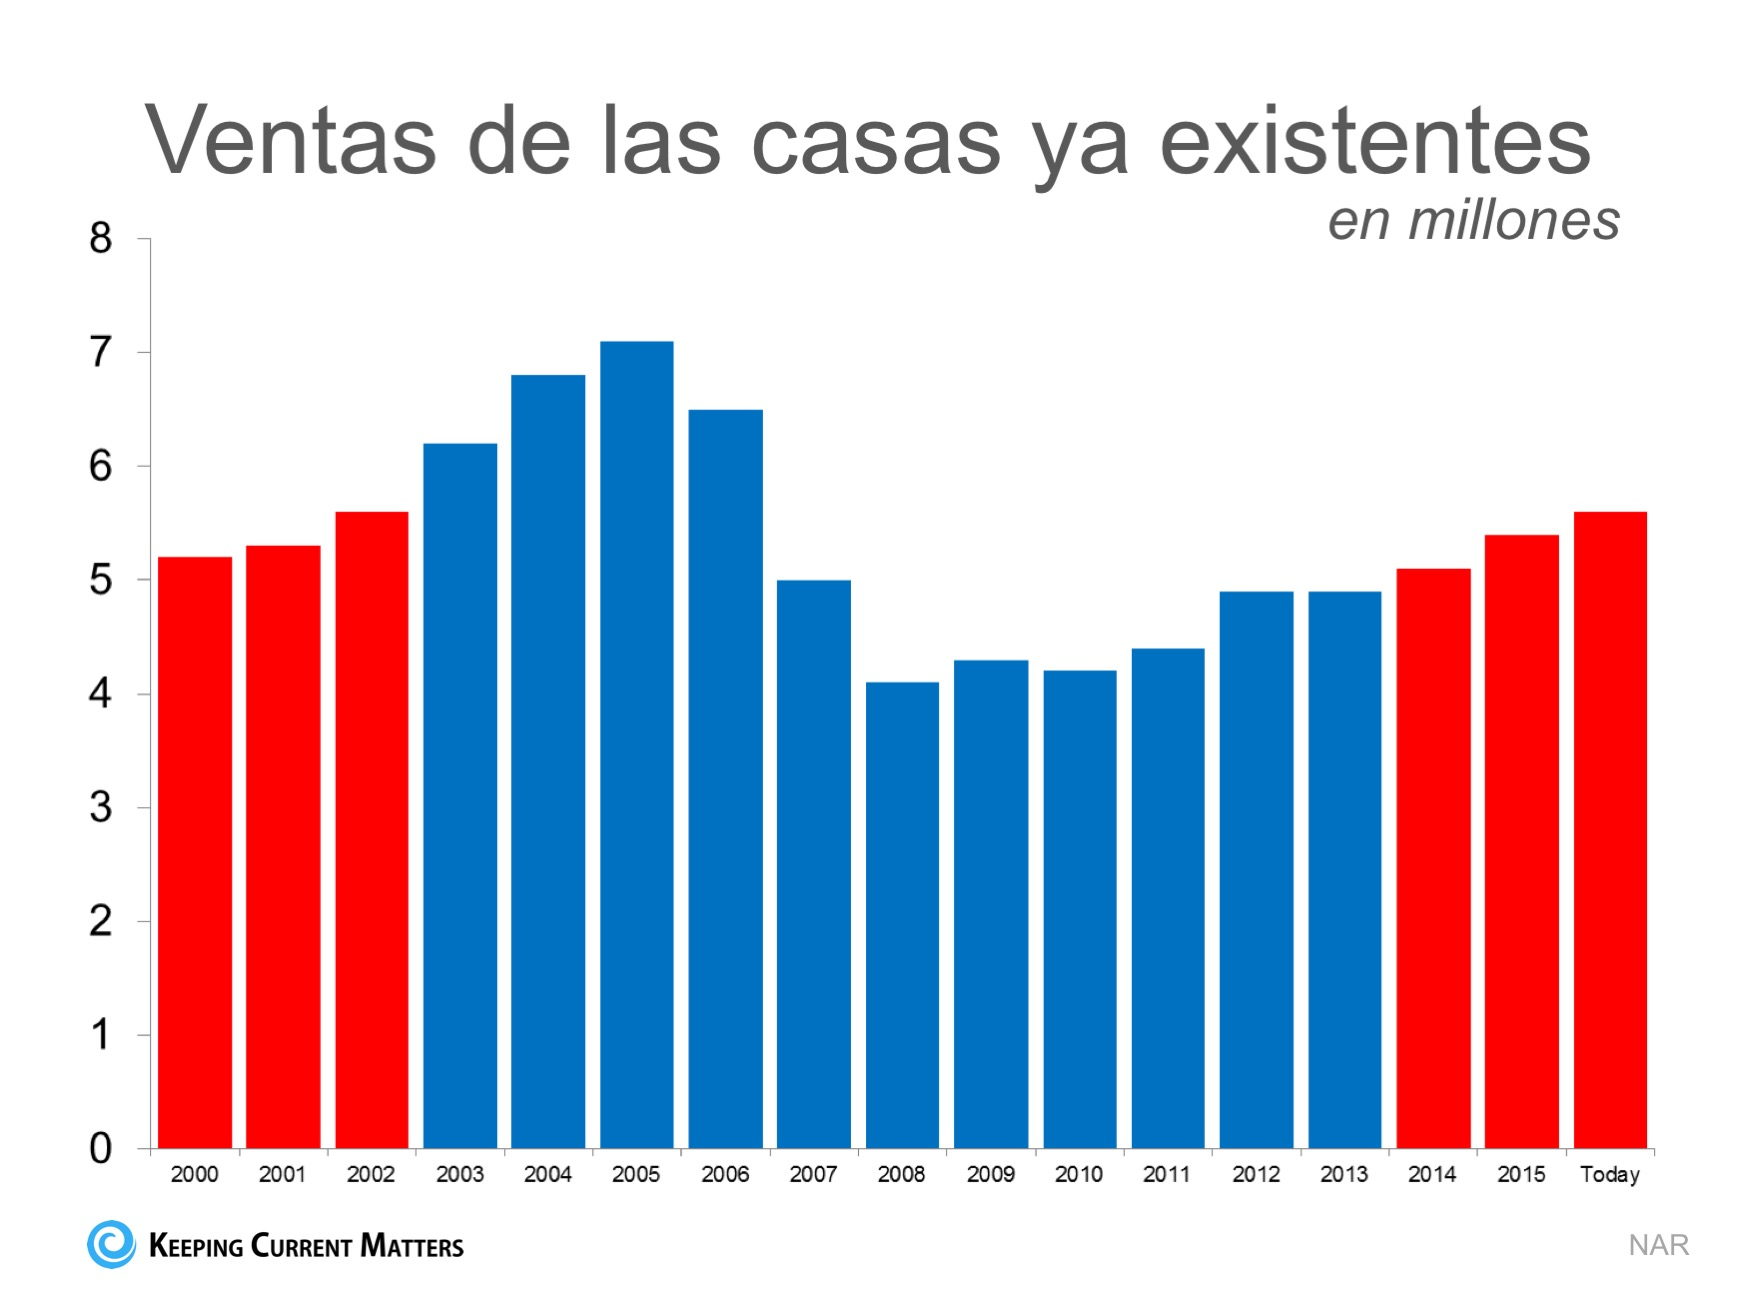 ¿Es sostenible el ritmo actual de las ventas de las casas? | Keeping Current Matters